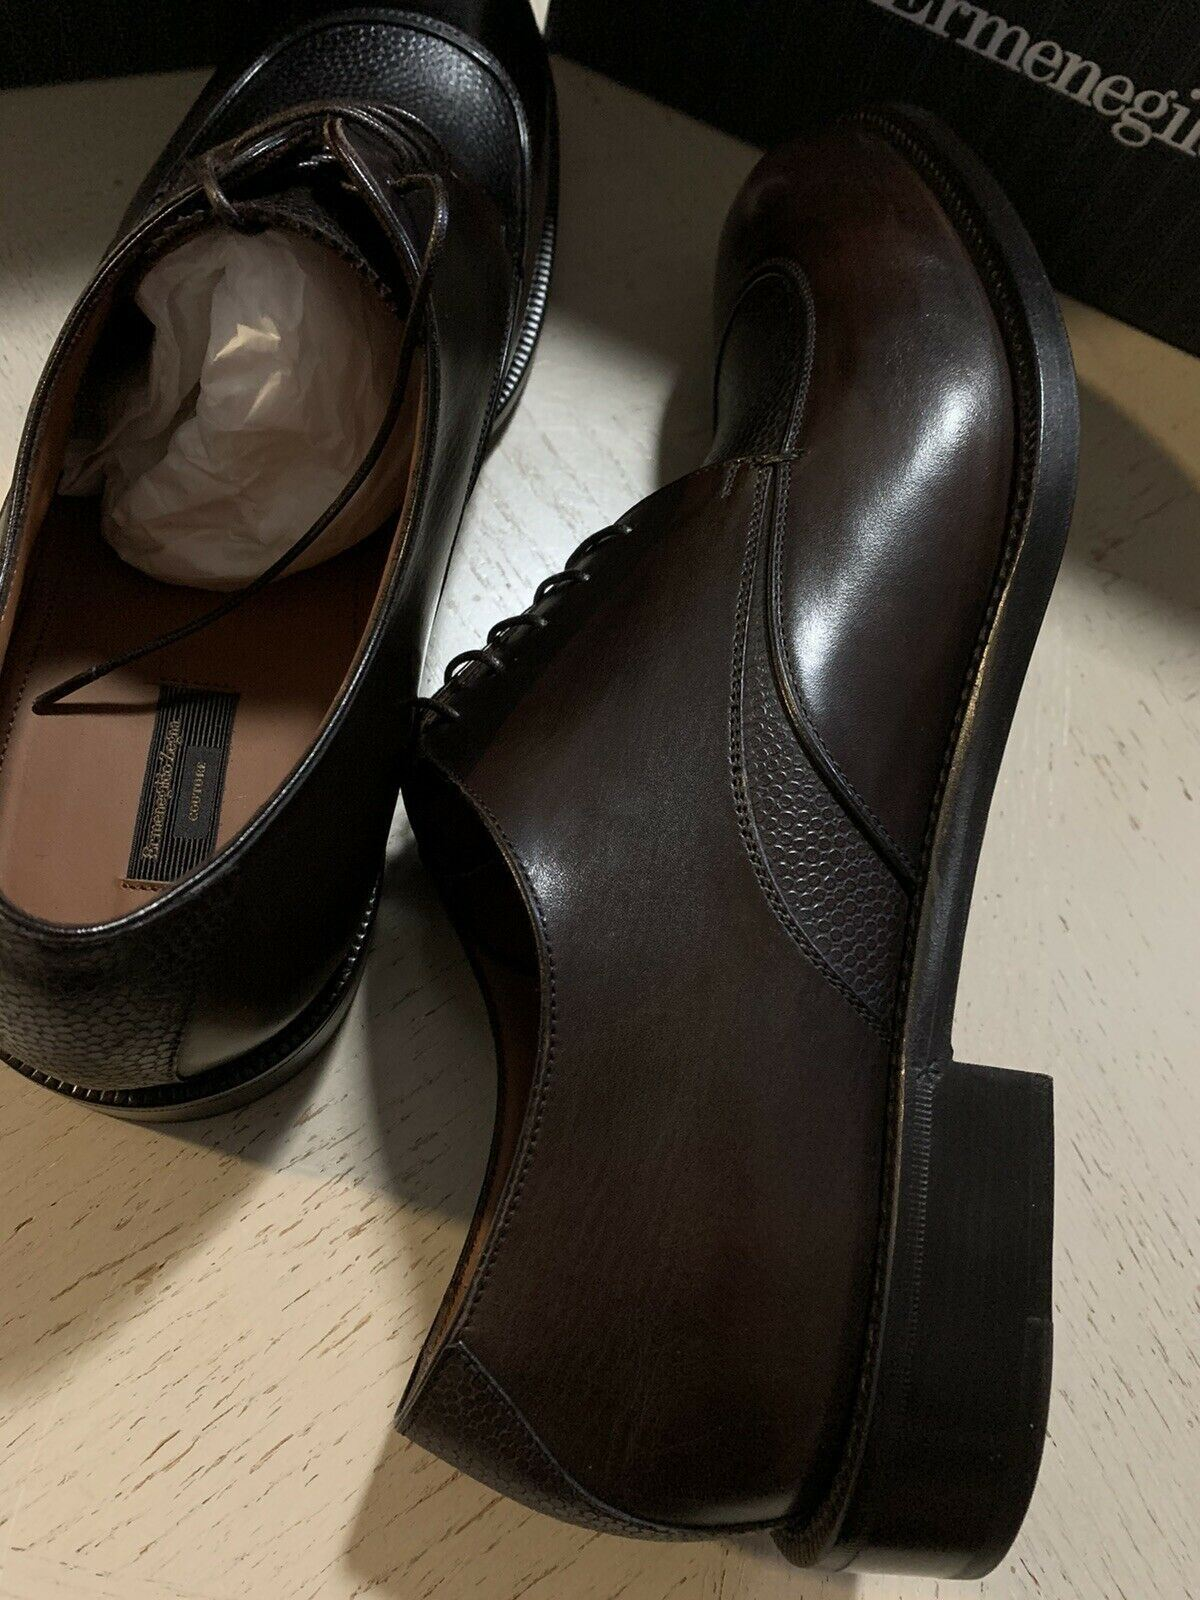 New $995 Ermenegildo Zegna Couture Leather Shoes Derby Dark Brown 9.5 US